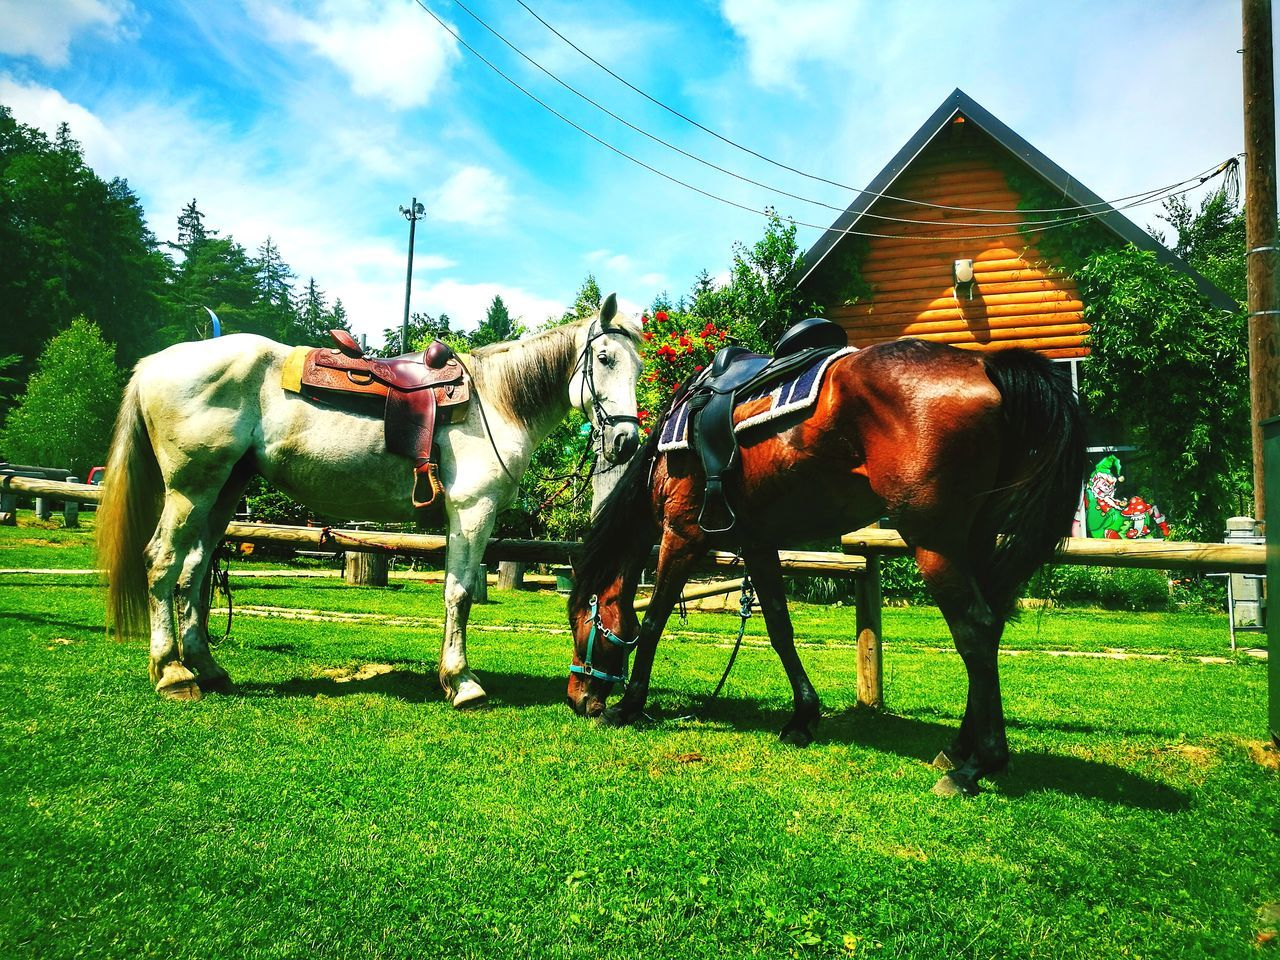 Horse Domestic Animals Grass Animal Themes Cloud - Sky Outdoors No People Day Sky Horse Photography  Horse Lovers Two Animals Horse Looking At You Horse Love Nature Blue Sky Beautiful Day Beauty In Nature Horsepower Green Color Landscape Blue Freshness Nature Energy Love Taking Pictures ❤️